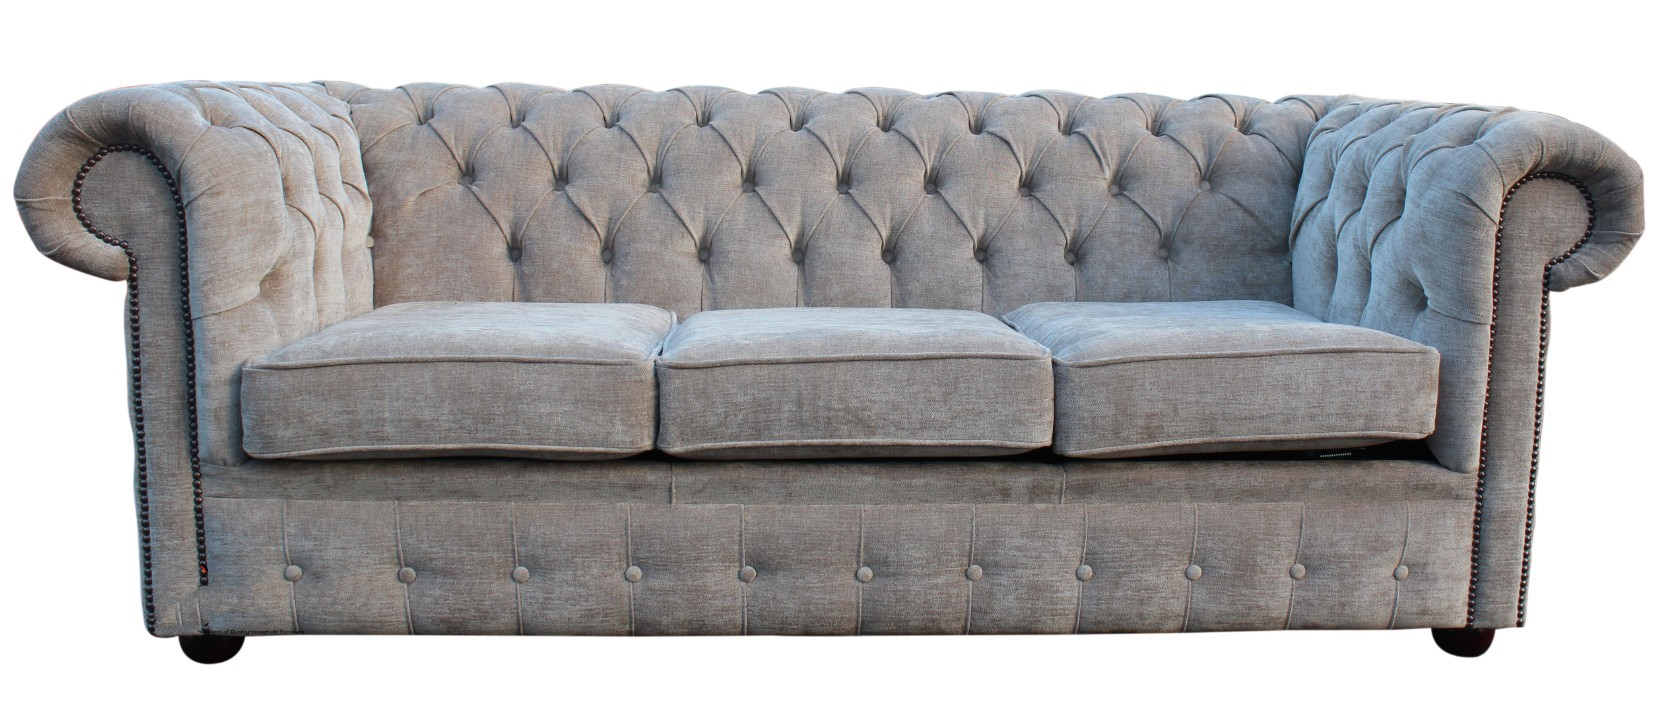 Buy mink coloured fabric Chesterfield sofa bed online : chesterfield 3 seater sofa settee ritz 2 from designersofas4u.co.uk size 1661 x 720 jpeg 566kB